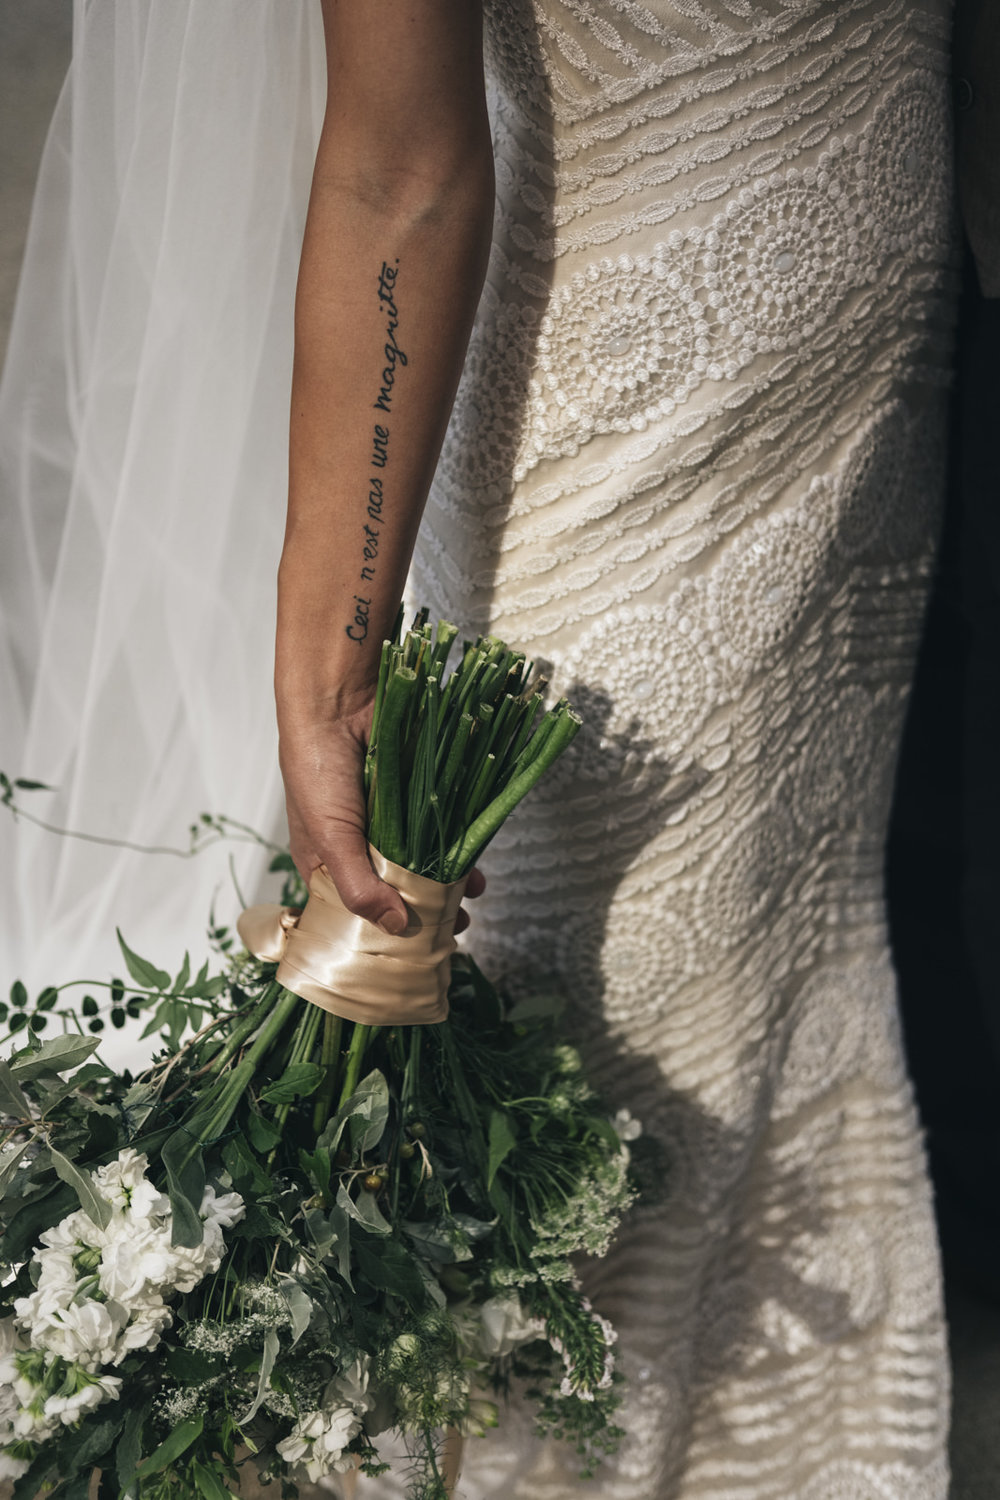 Beautiful quote tattoo on bride.